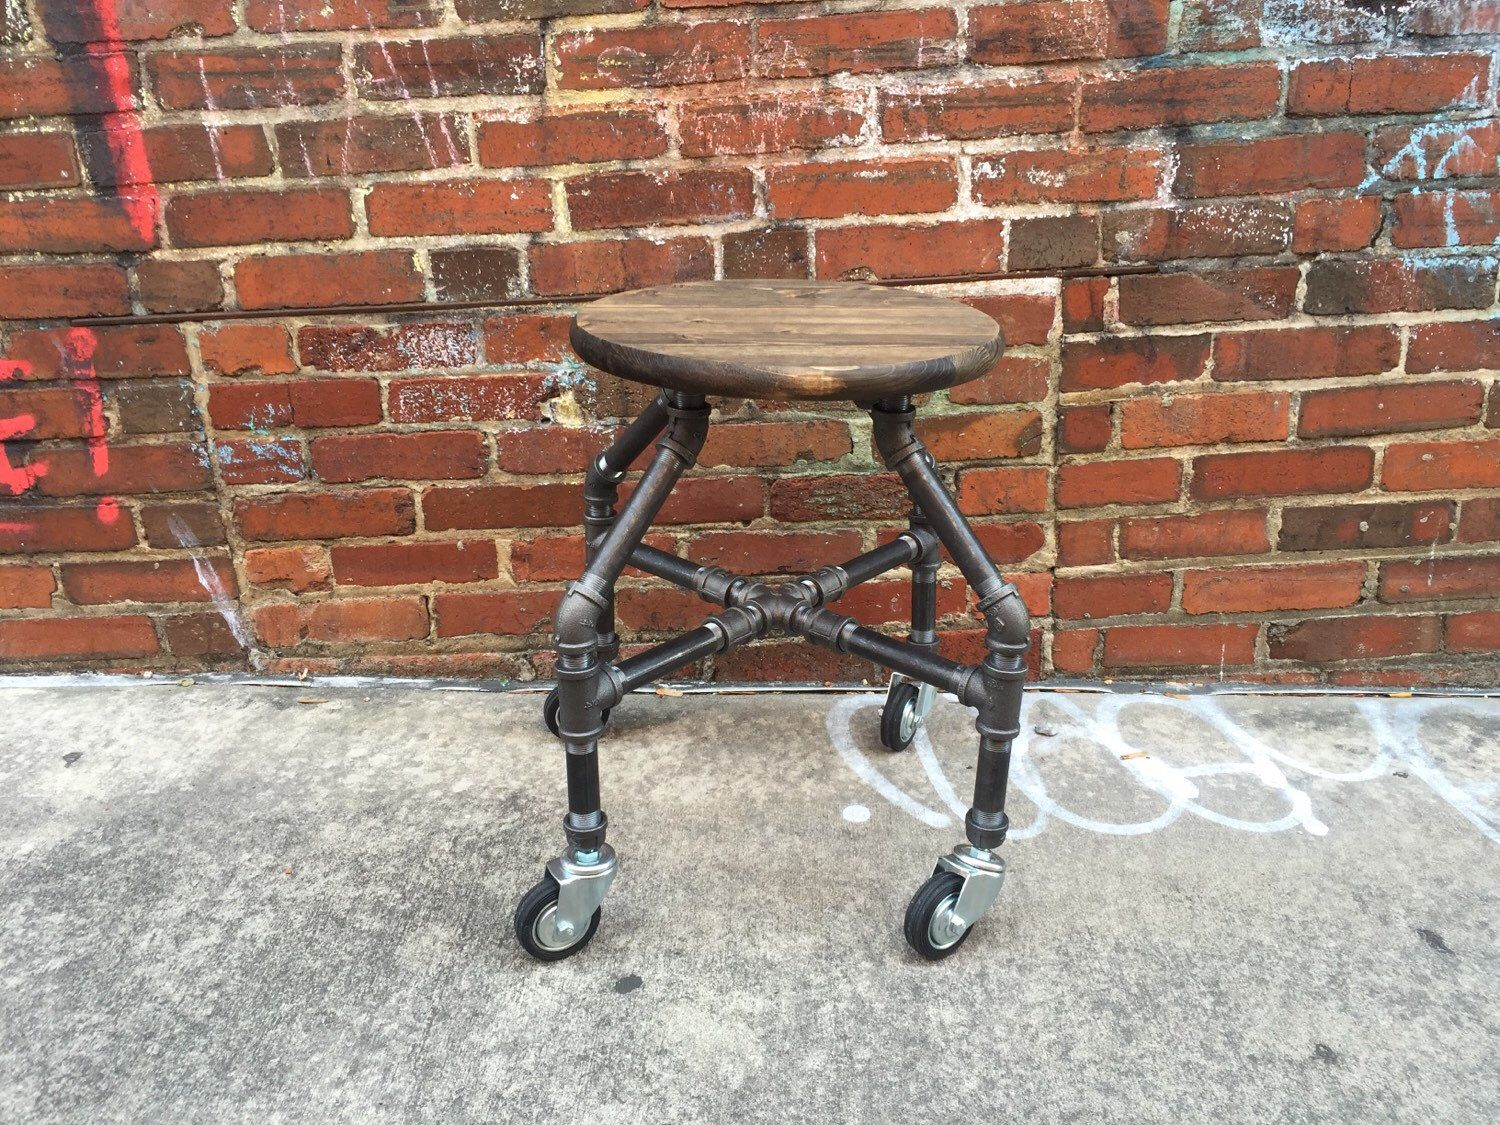 Bar Stool Industrial Stool Work Stool Pipe by TheCleverRaven & Jeff-Bar Stool Industrial Stool Pipe Furniture by TheCleverRaven ... islam-shia.org